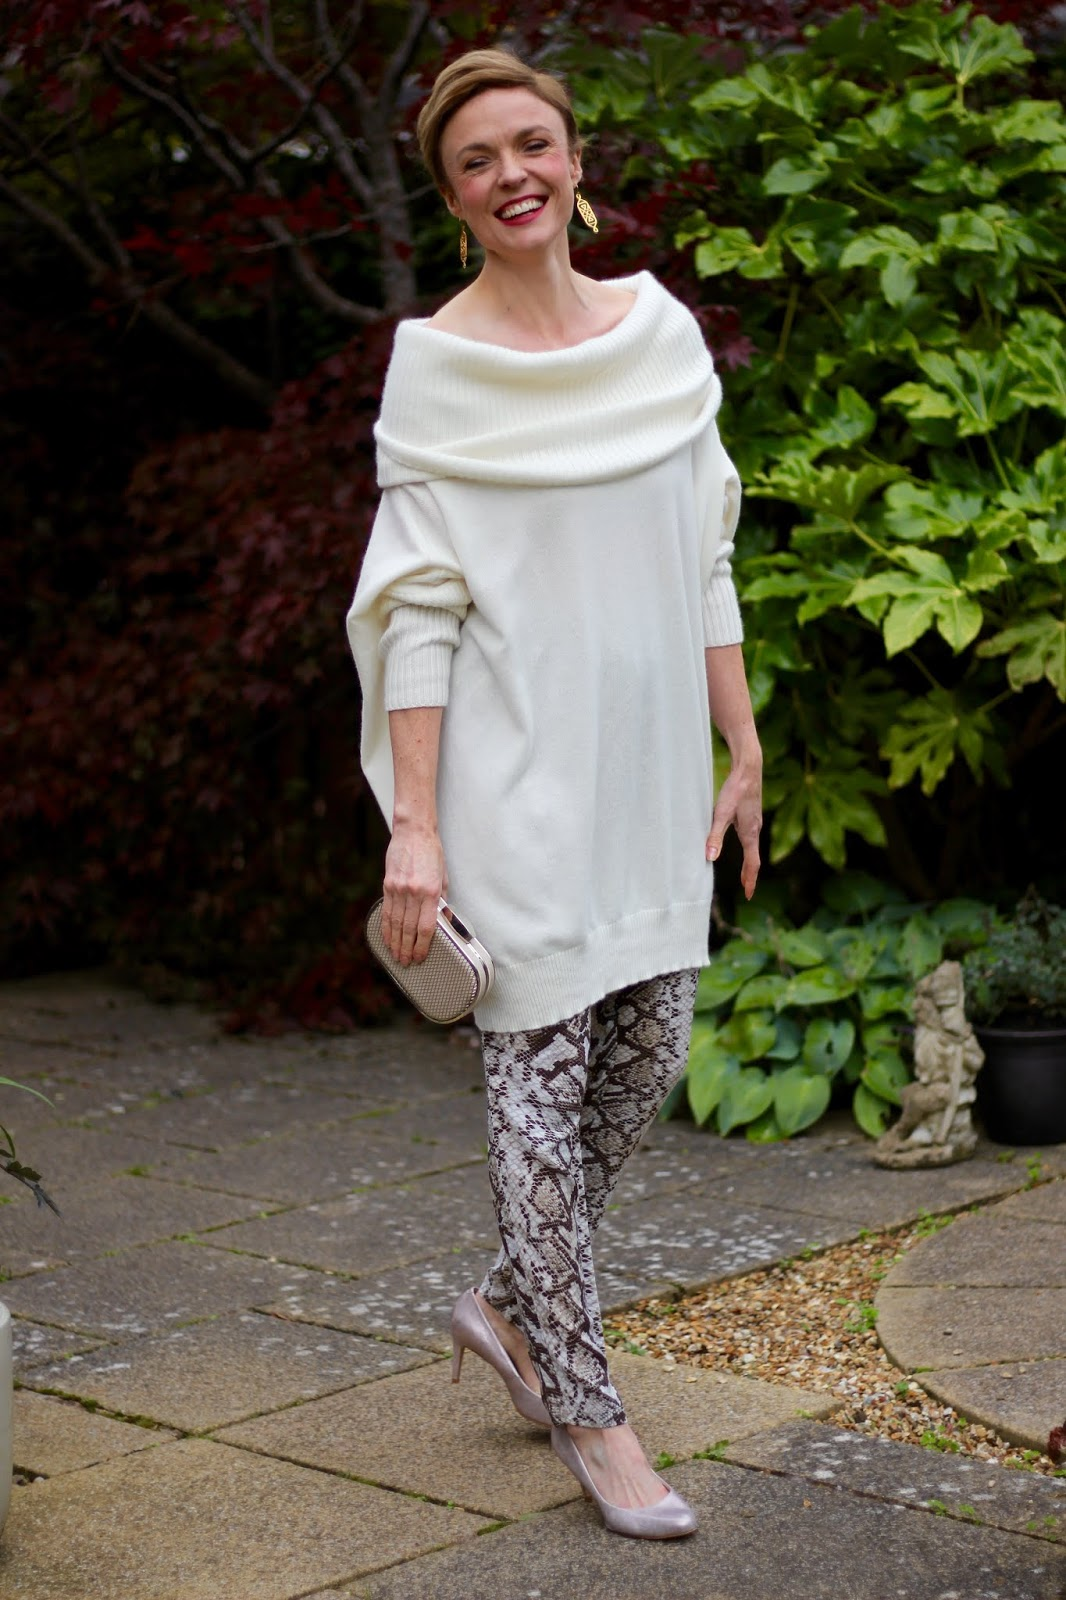 Oversized Winter White Cashmere Jumper & Snake Joggers | Fake Fabulous